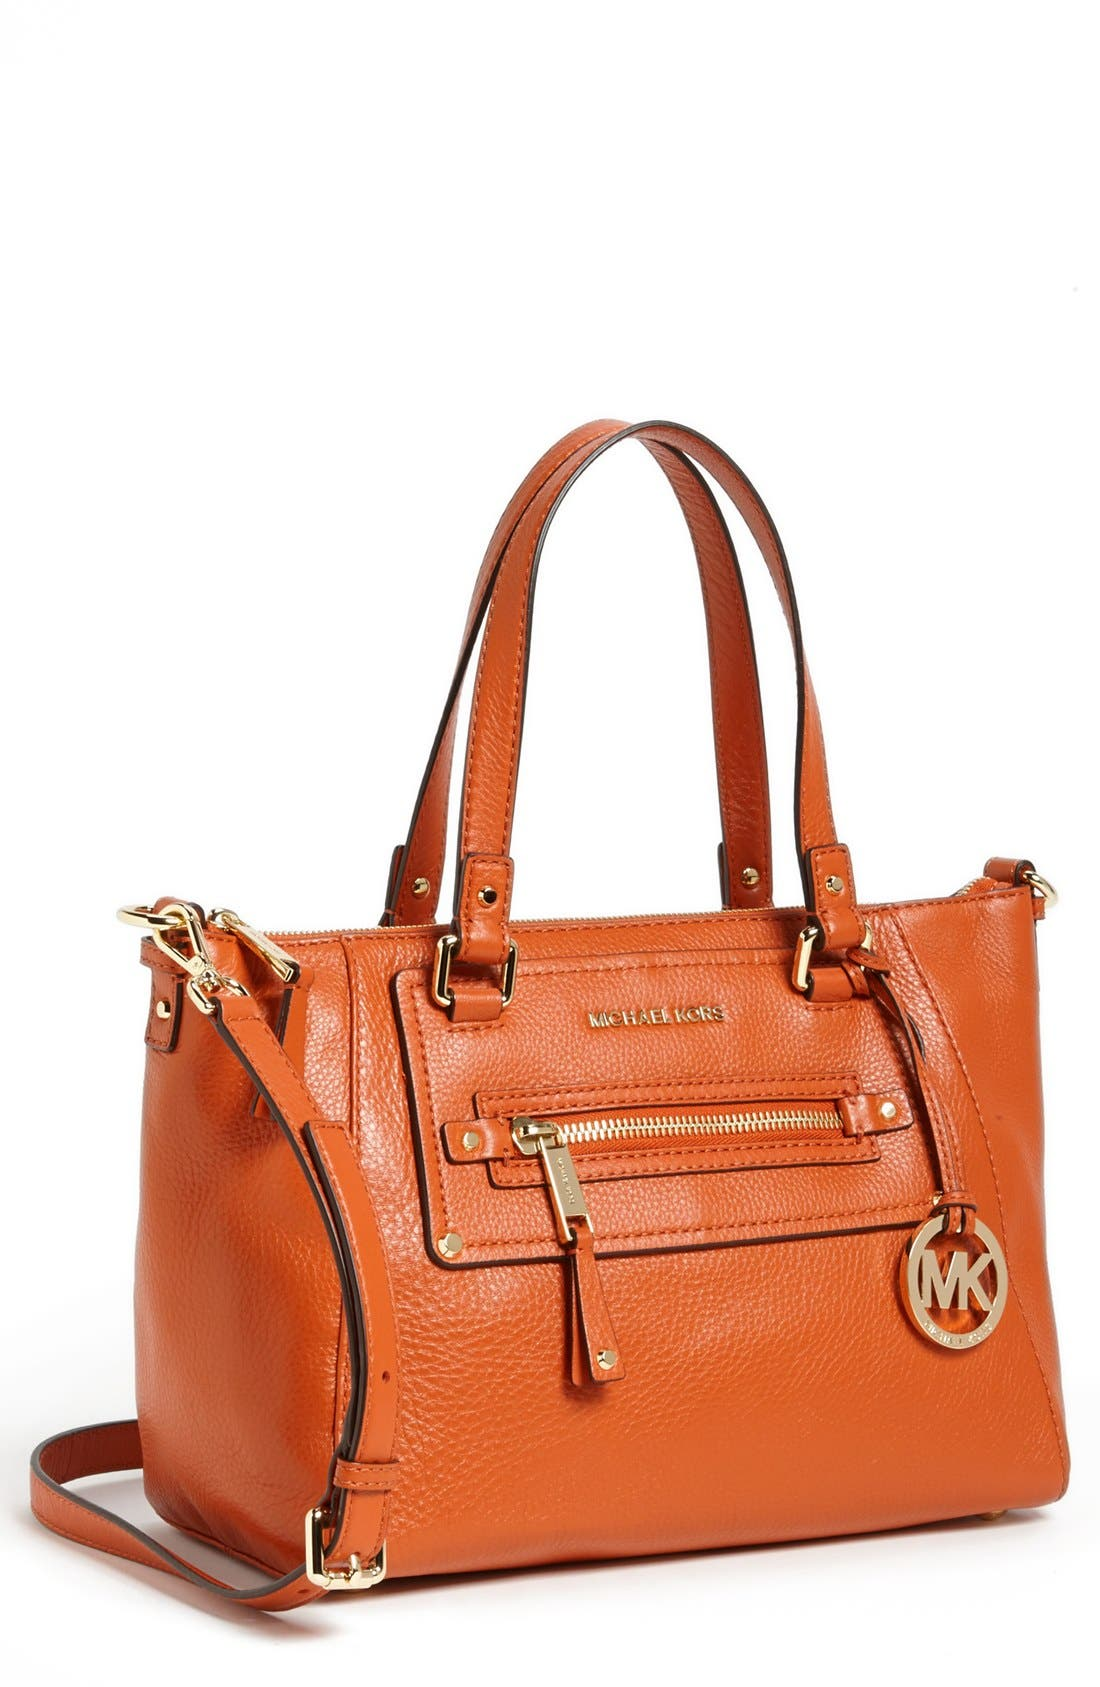 Alternate Image 1 Selected - MICHAEL Michael Kors 'Gilmore - Medium' Satchel